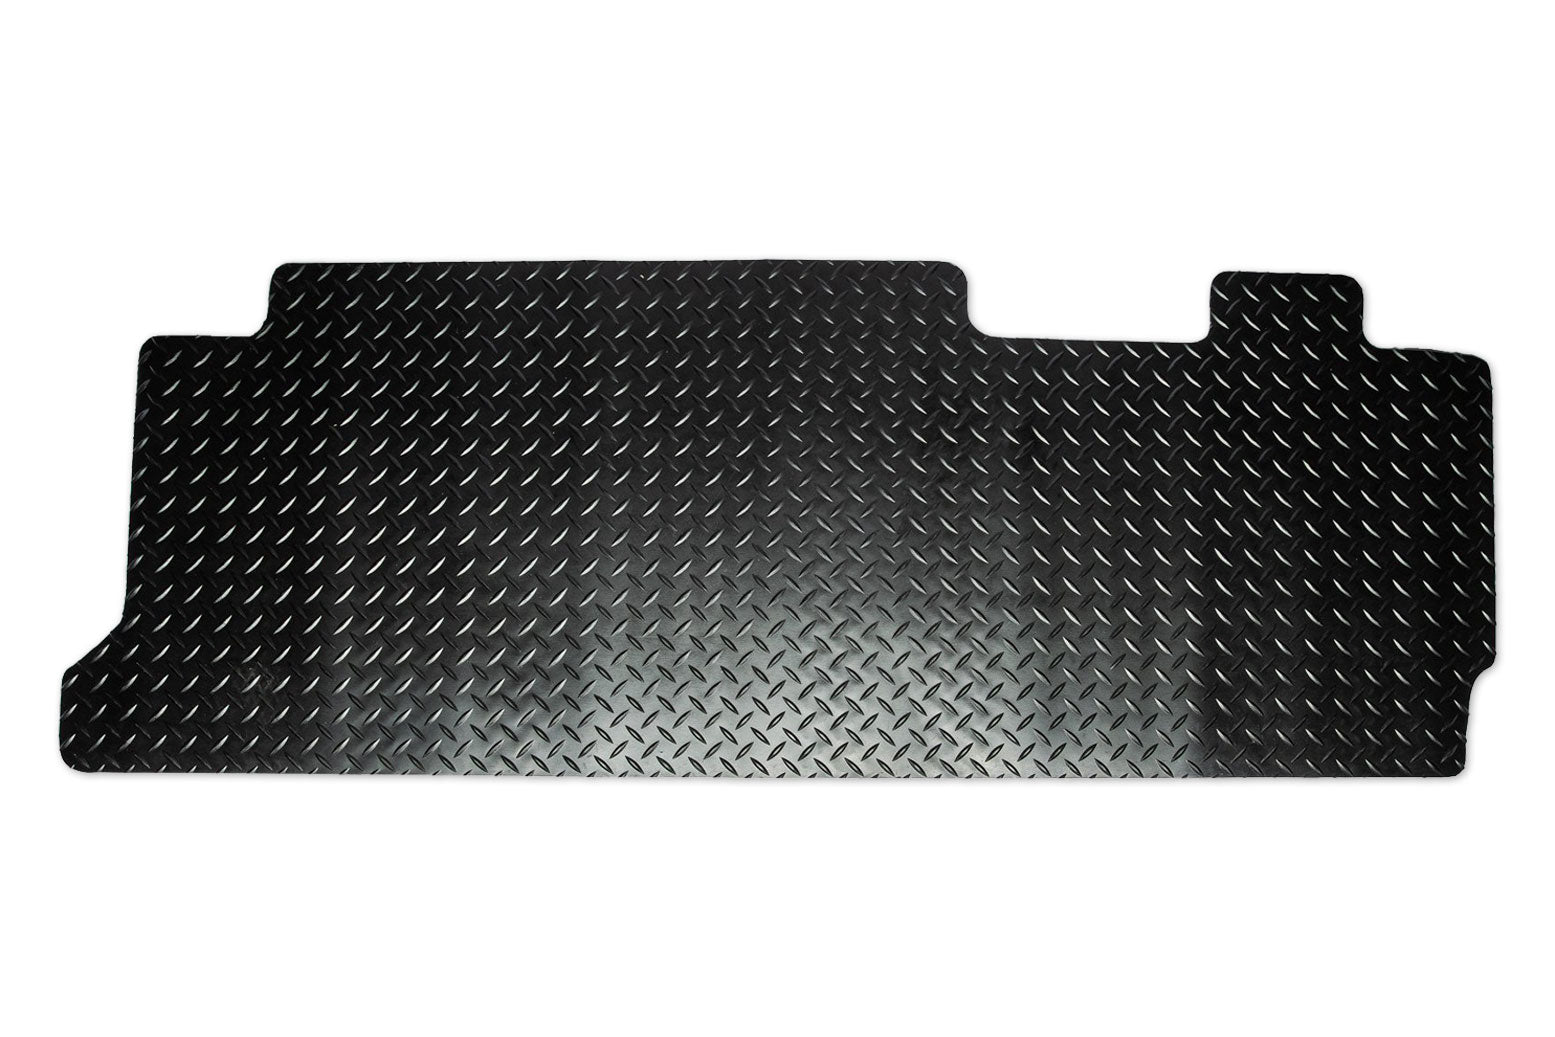 T6 point 1 combi rear mat for 2 plus 1 seat with double slider doors shown in black tread plate rubber